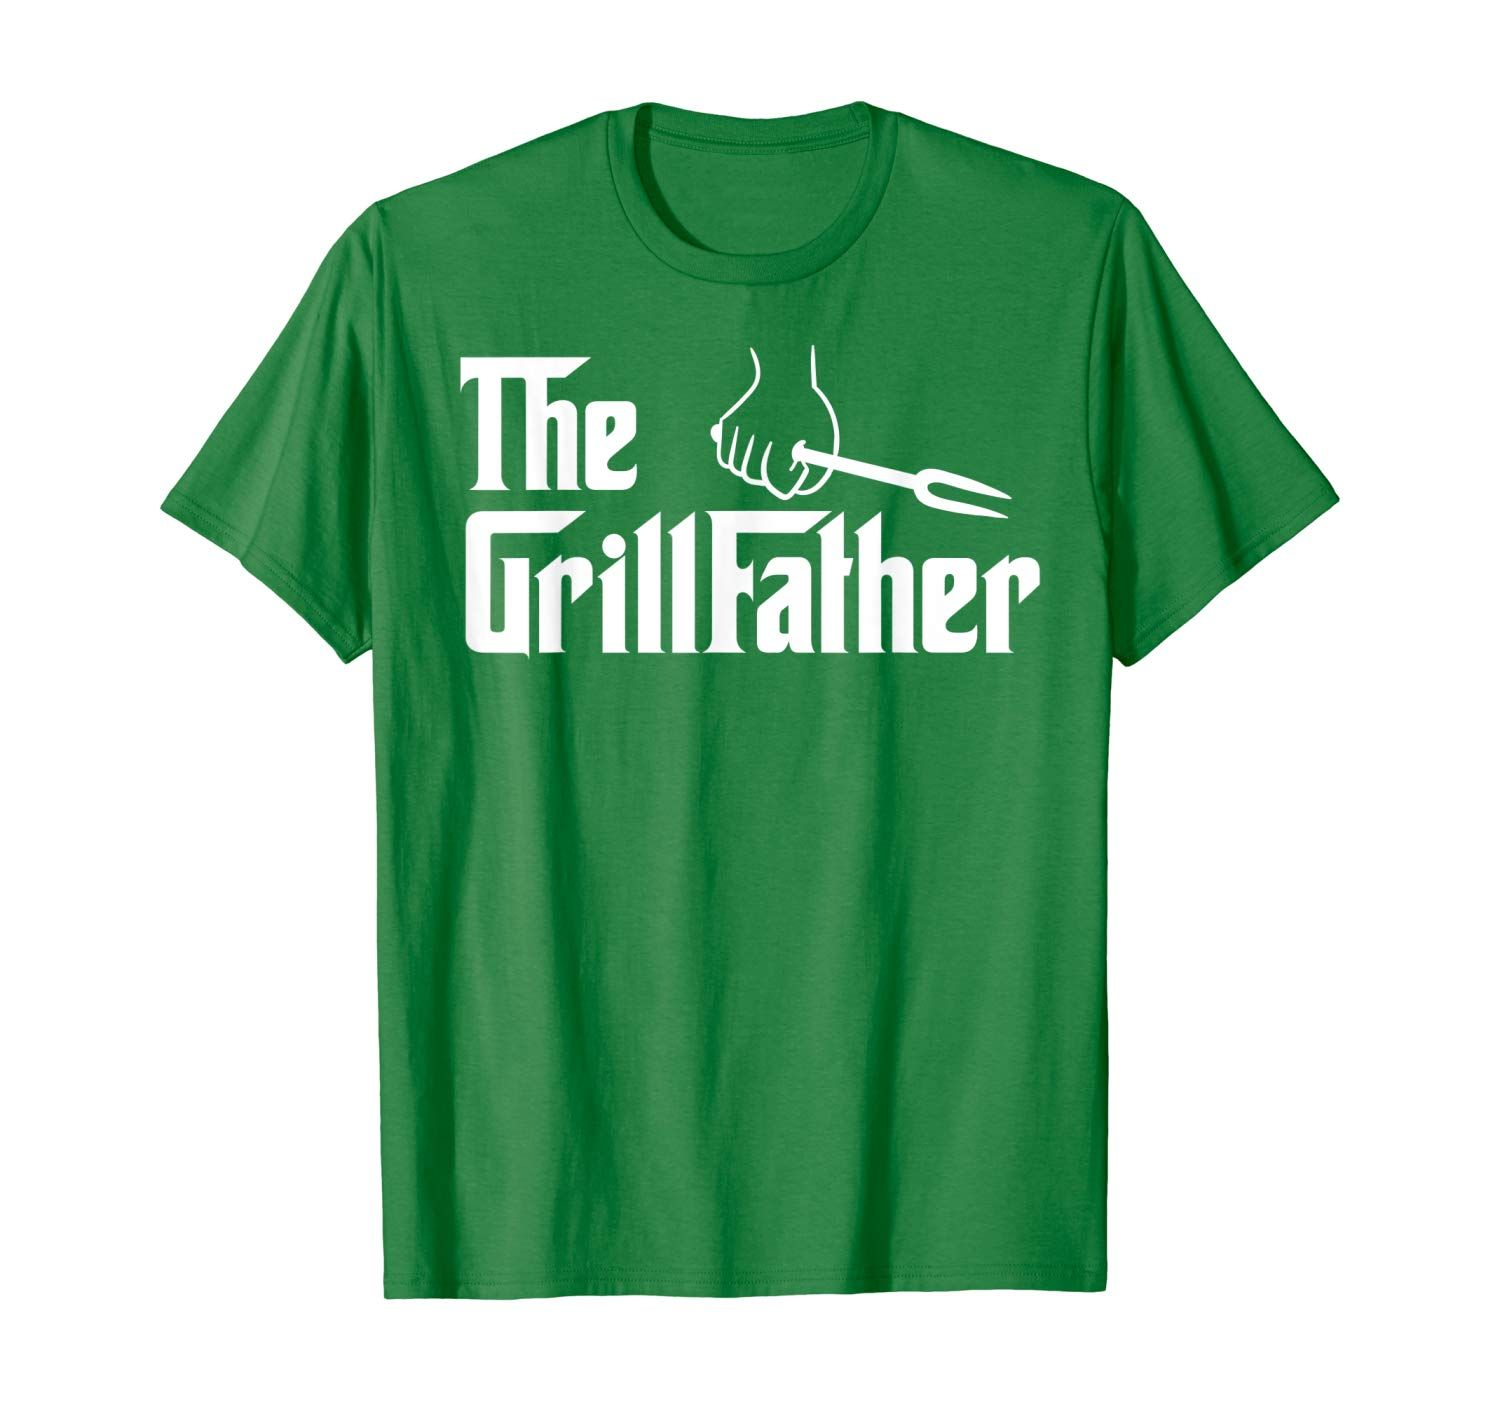 BBQ T Shirt Funny Cooking Gifts for Men Grill Master